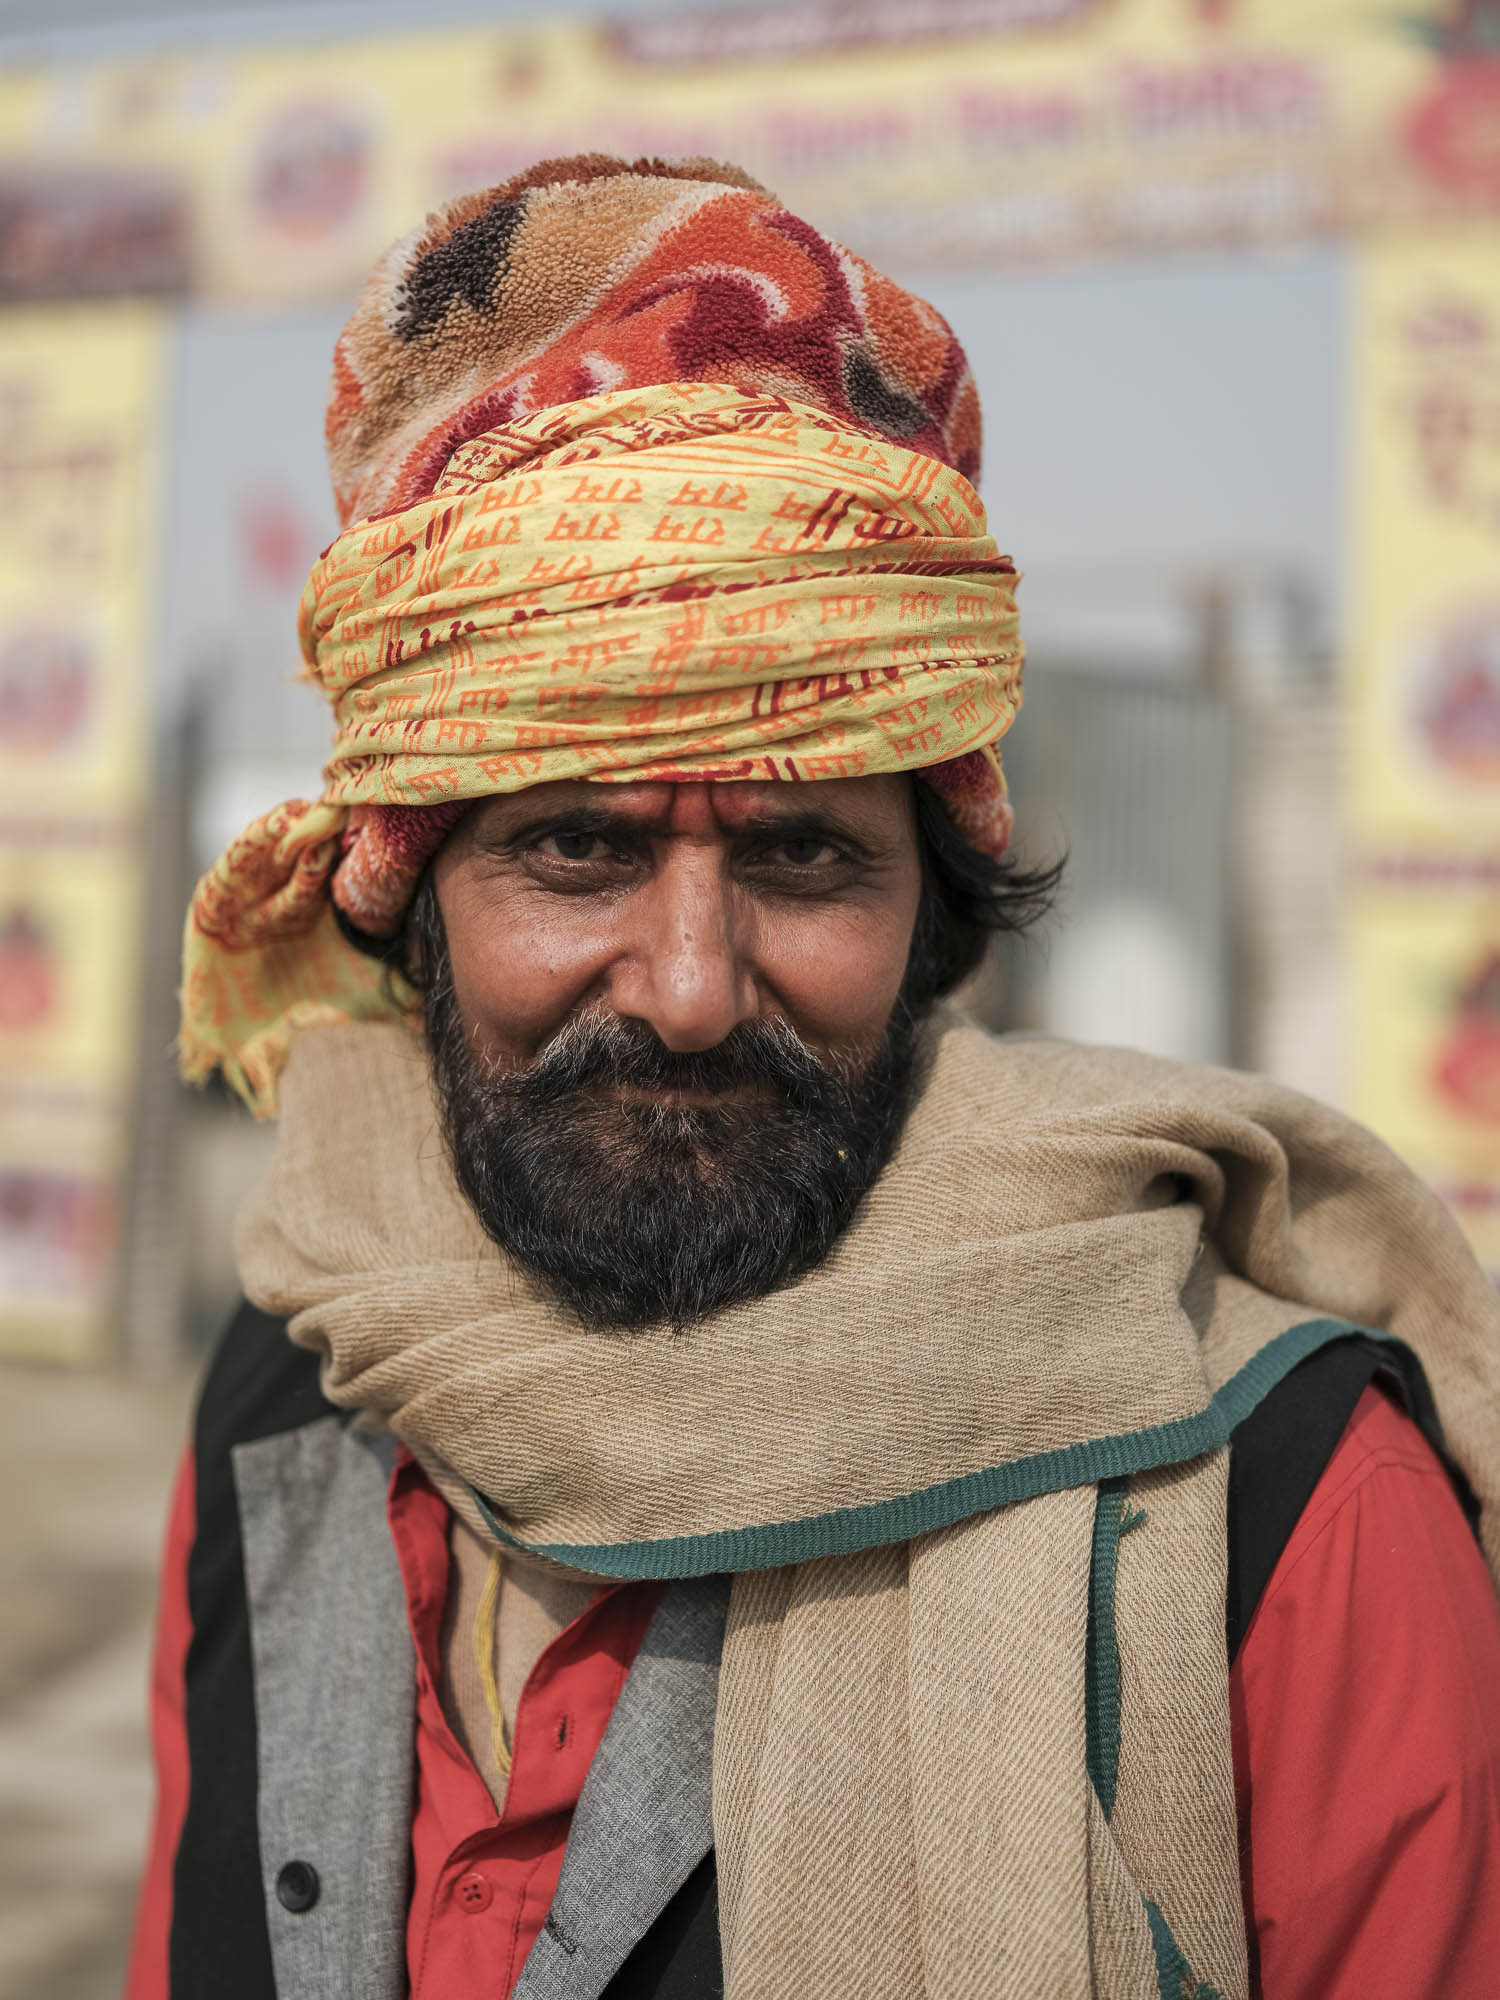 portait man pilgrims Kumbh mela 2019 India Allahabad Prayagraj Ardh hindu religious Festival event rivers photographer jose jeuland photography